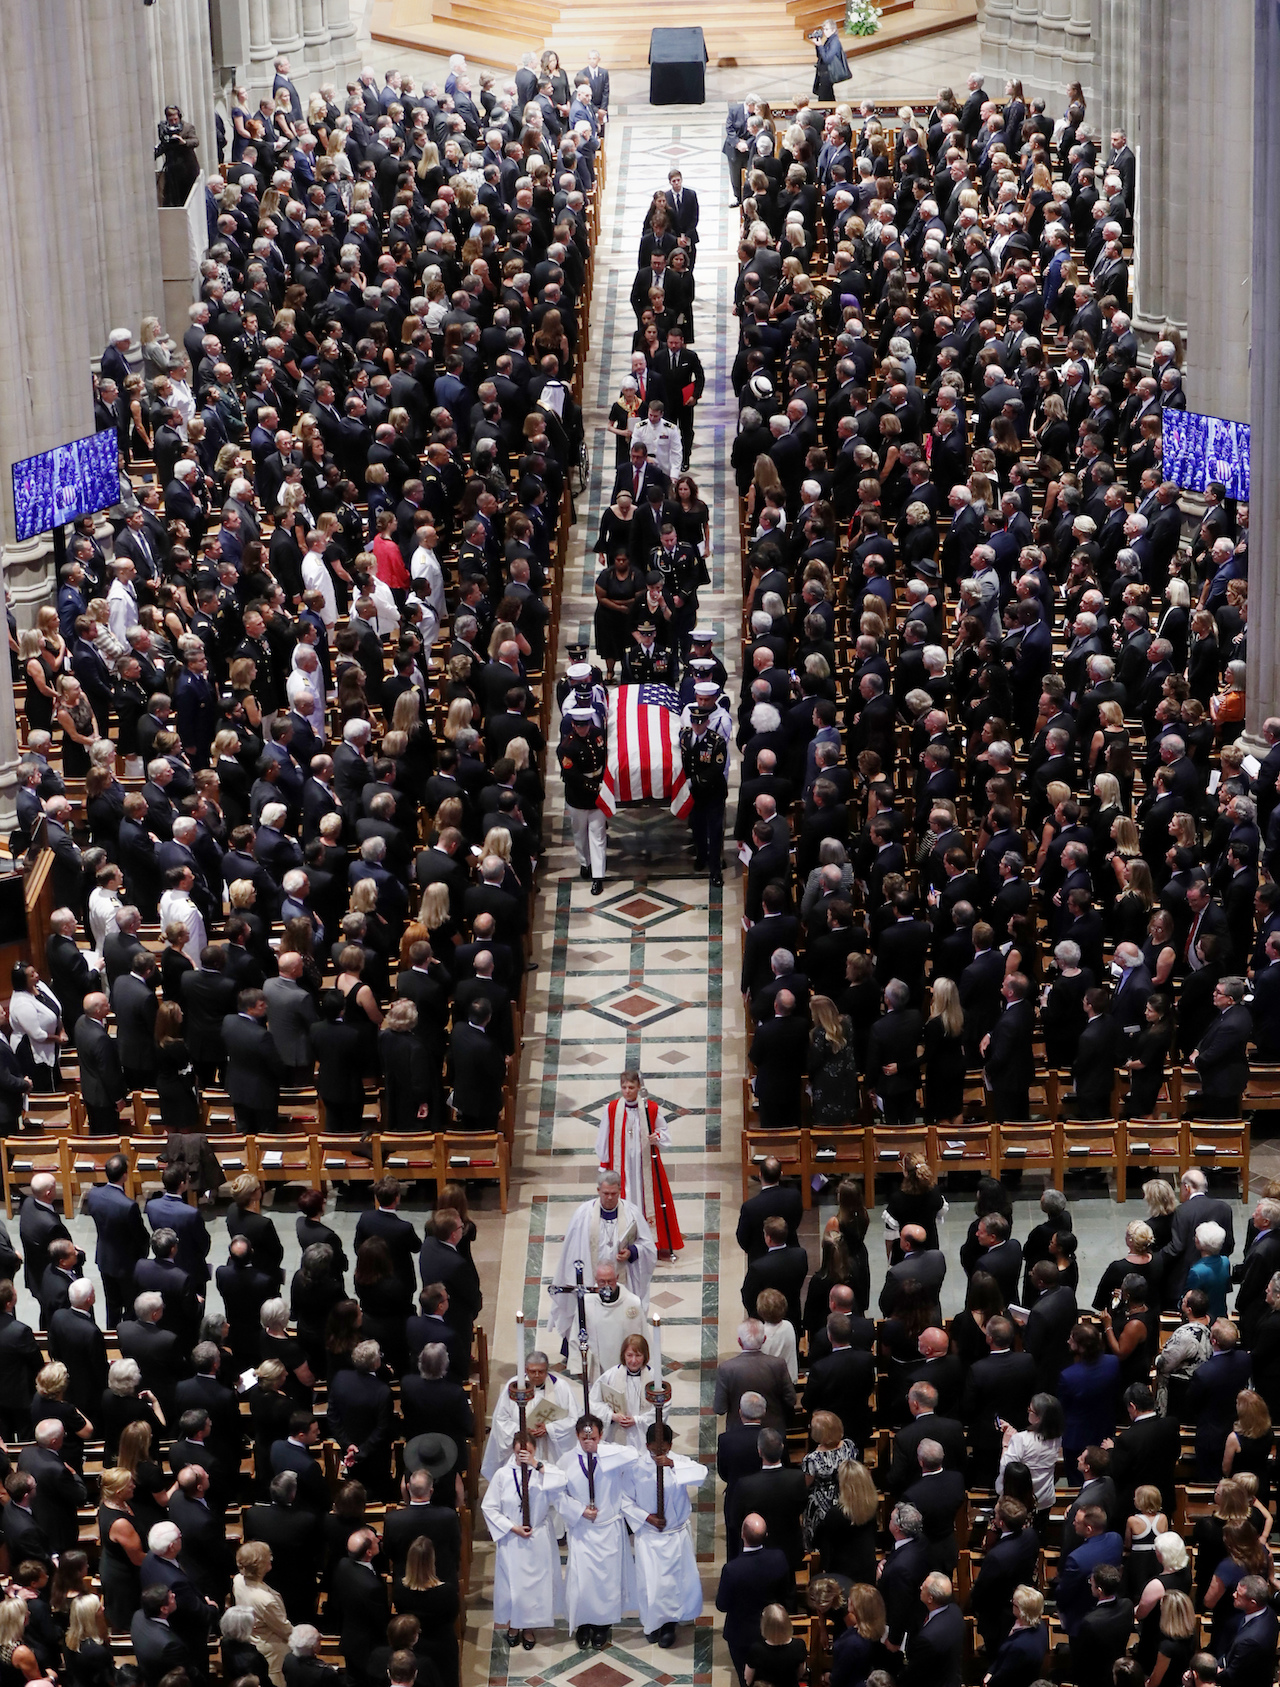 <div class='meta'><div class='origin-logo' data-origin='AP'></div><span class='caption-text' data-credit='AP Photo/Pablo Martinez Monsivais'>at a memorial services for Sen. John McCain, R-Ariz., at Washington Nationals Cathedral in Washington, Saturday, Sept. 1, 2018.</span></div>